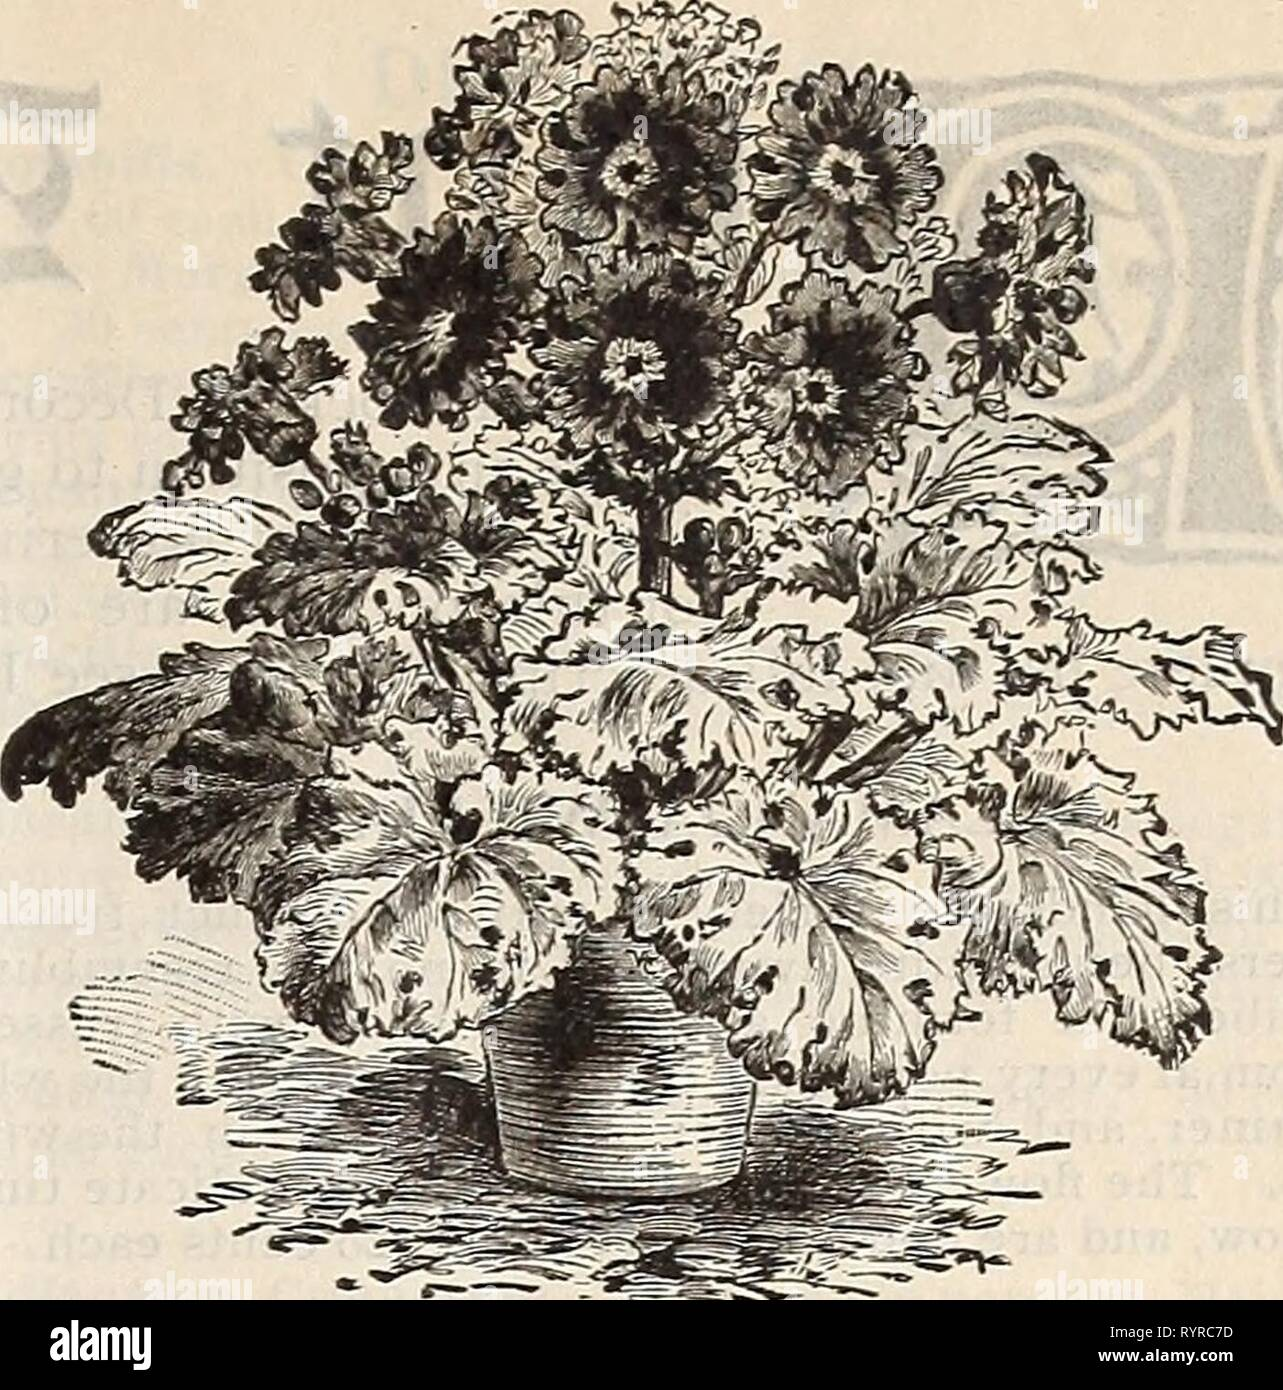 Dreer's mid-summer catalogue 1897  Dreer's mid-summer catalogue 1897 : pot-grown strawberry plants, celery and other seasonable plants, seeds etc . dreersmidsummerc1897henr Year: 1897  Jif PANSIES. Dreer's Superb Strains. Fer pkt. This attractive plant is too well known to require any description, as it is a favorite with all. We have made careful tests of all the leading strains, and offer the following as the best in their several classes. 6238 Dreer's Royal Exhibition. This strain com- prises a beautiful collection of colors and mark- ings, and we are confident it will prove satisfac- tory  - Stock Image